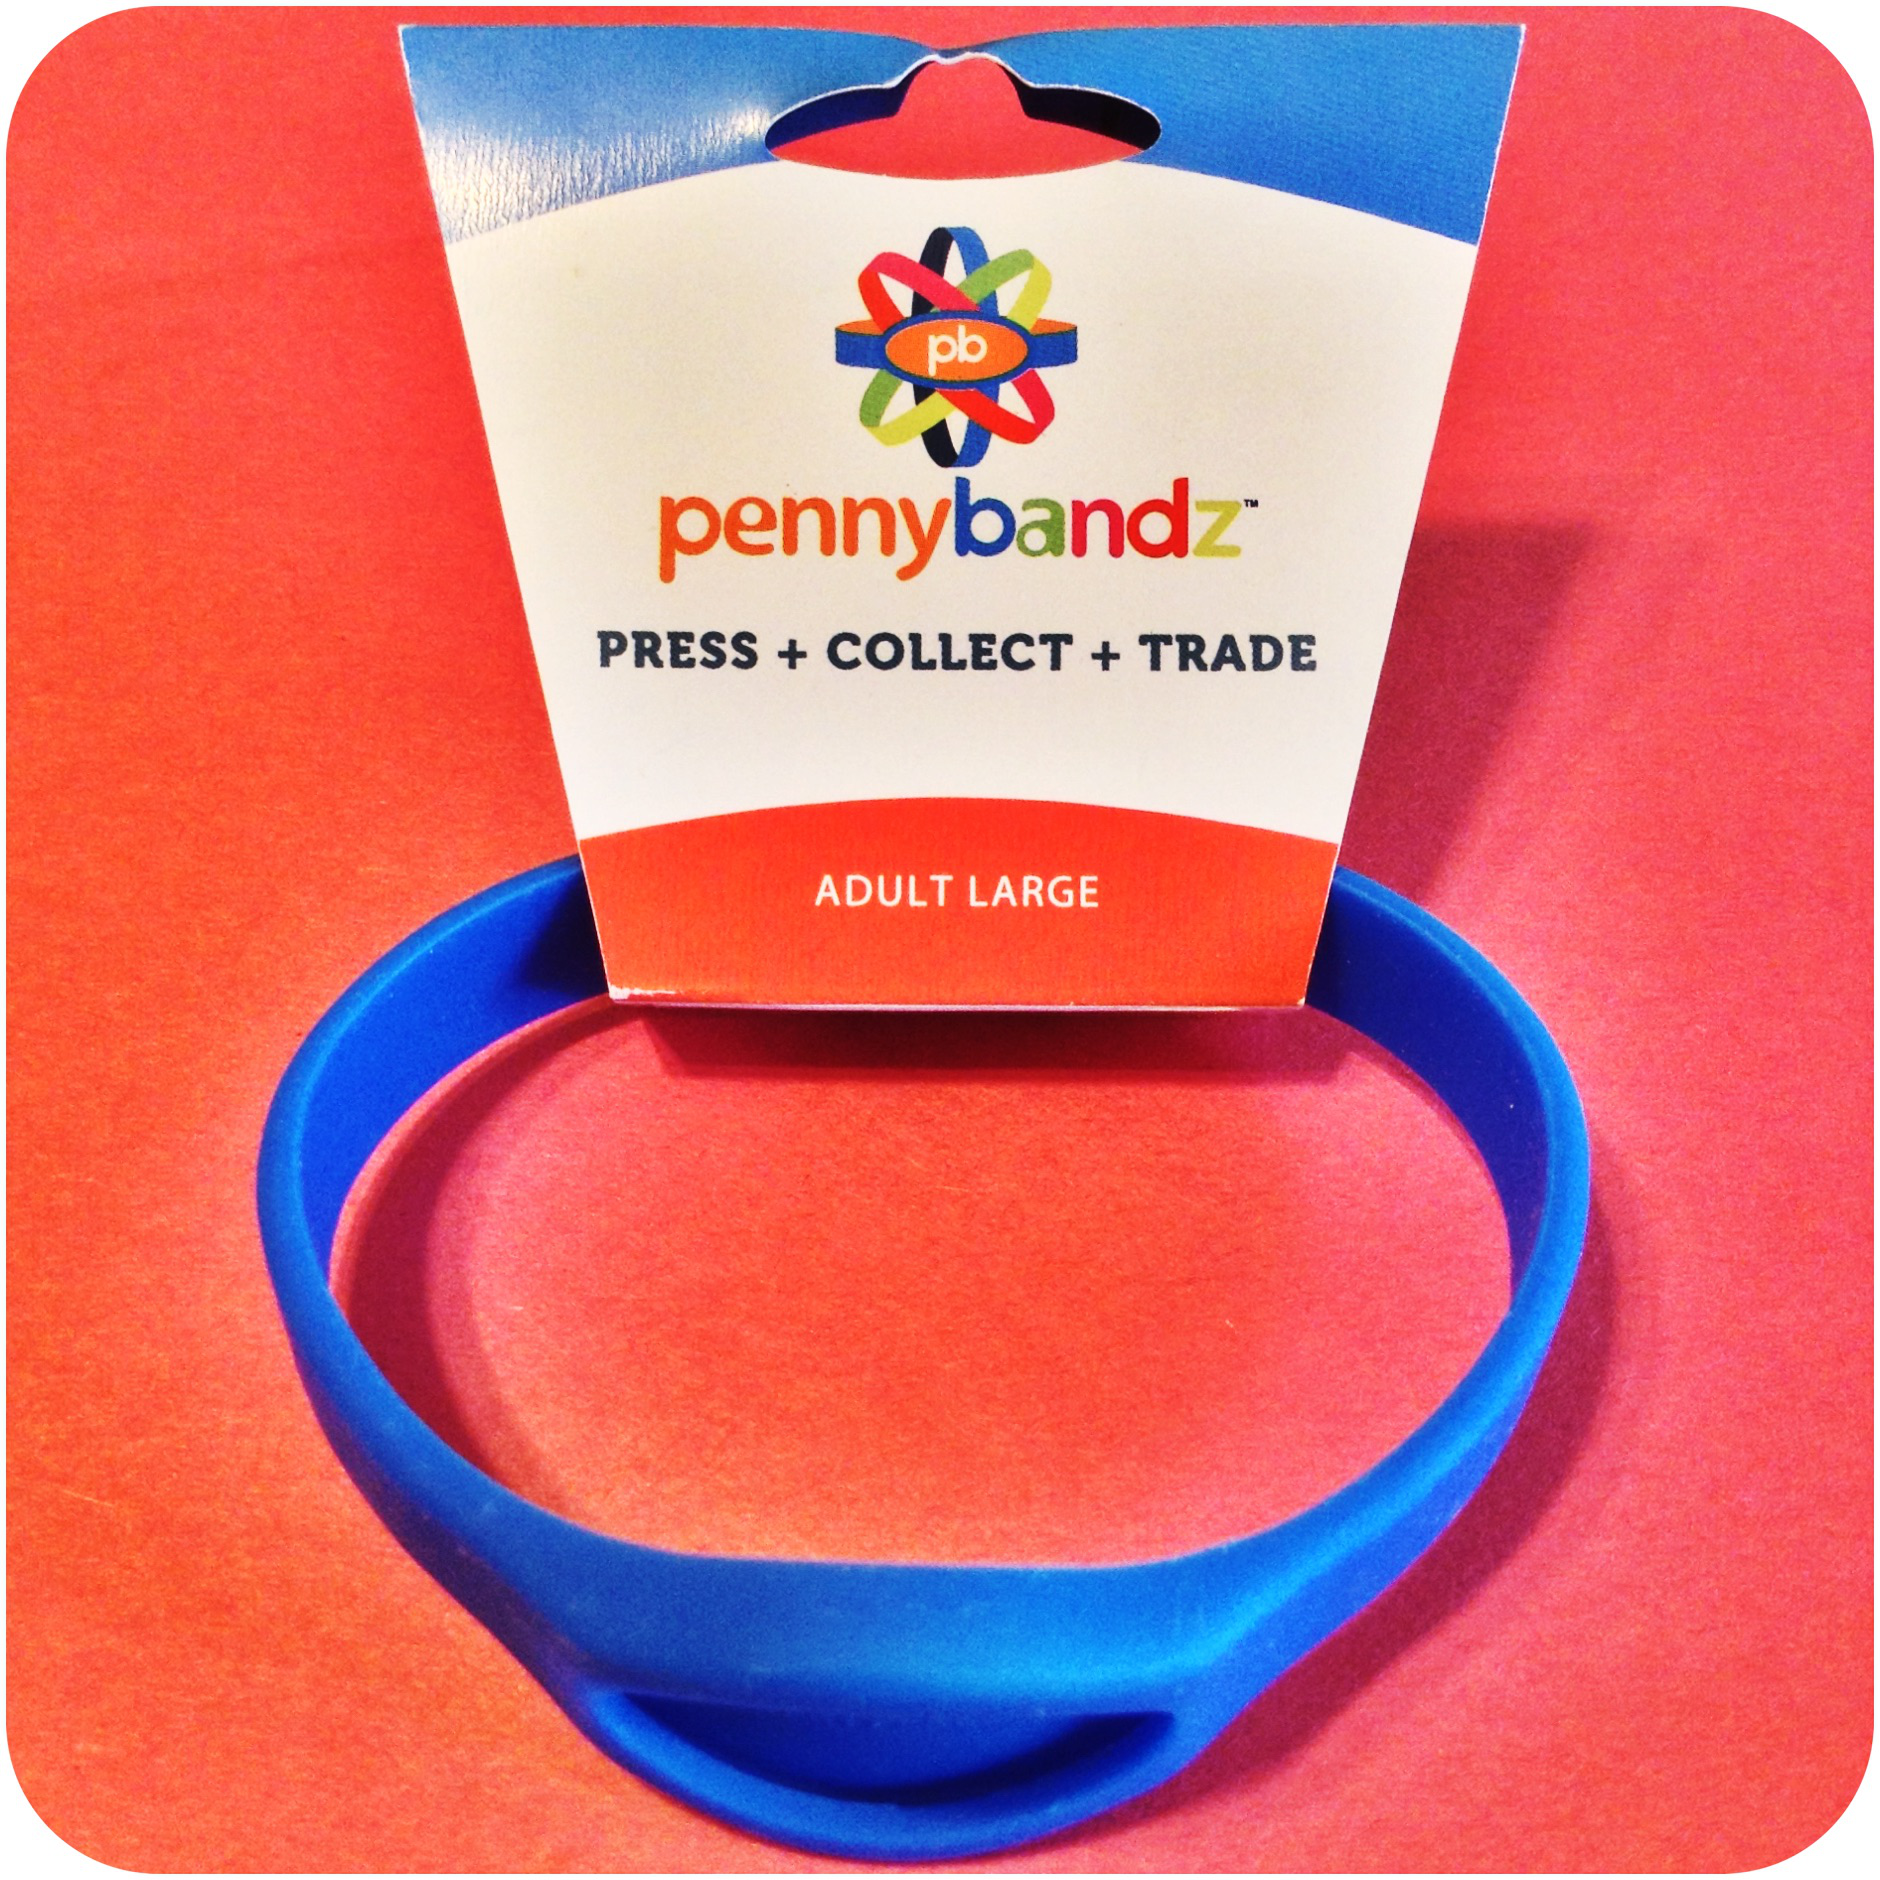 Cool Surfer Blue Pennybandz® Elongated Penny Holder Wristband - Adult Large Size